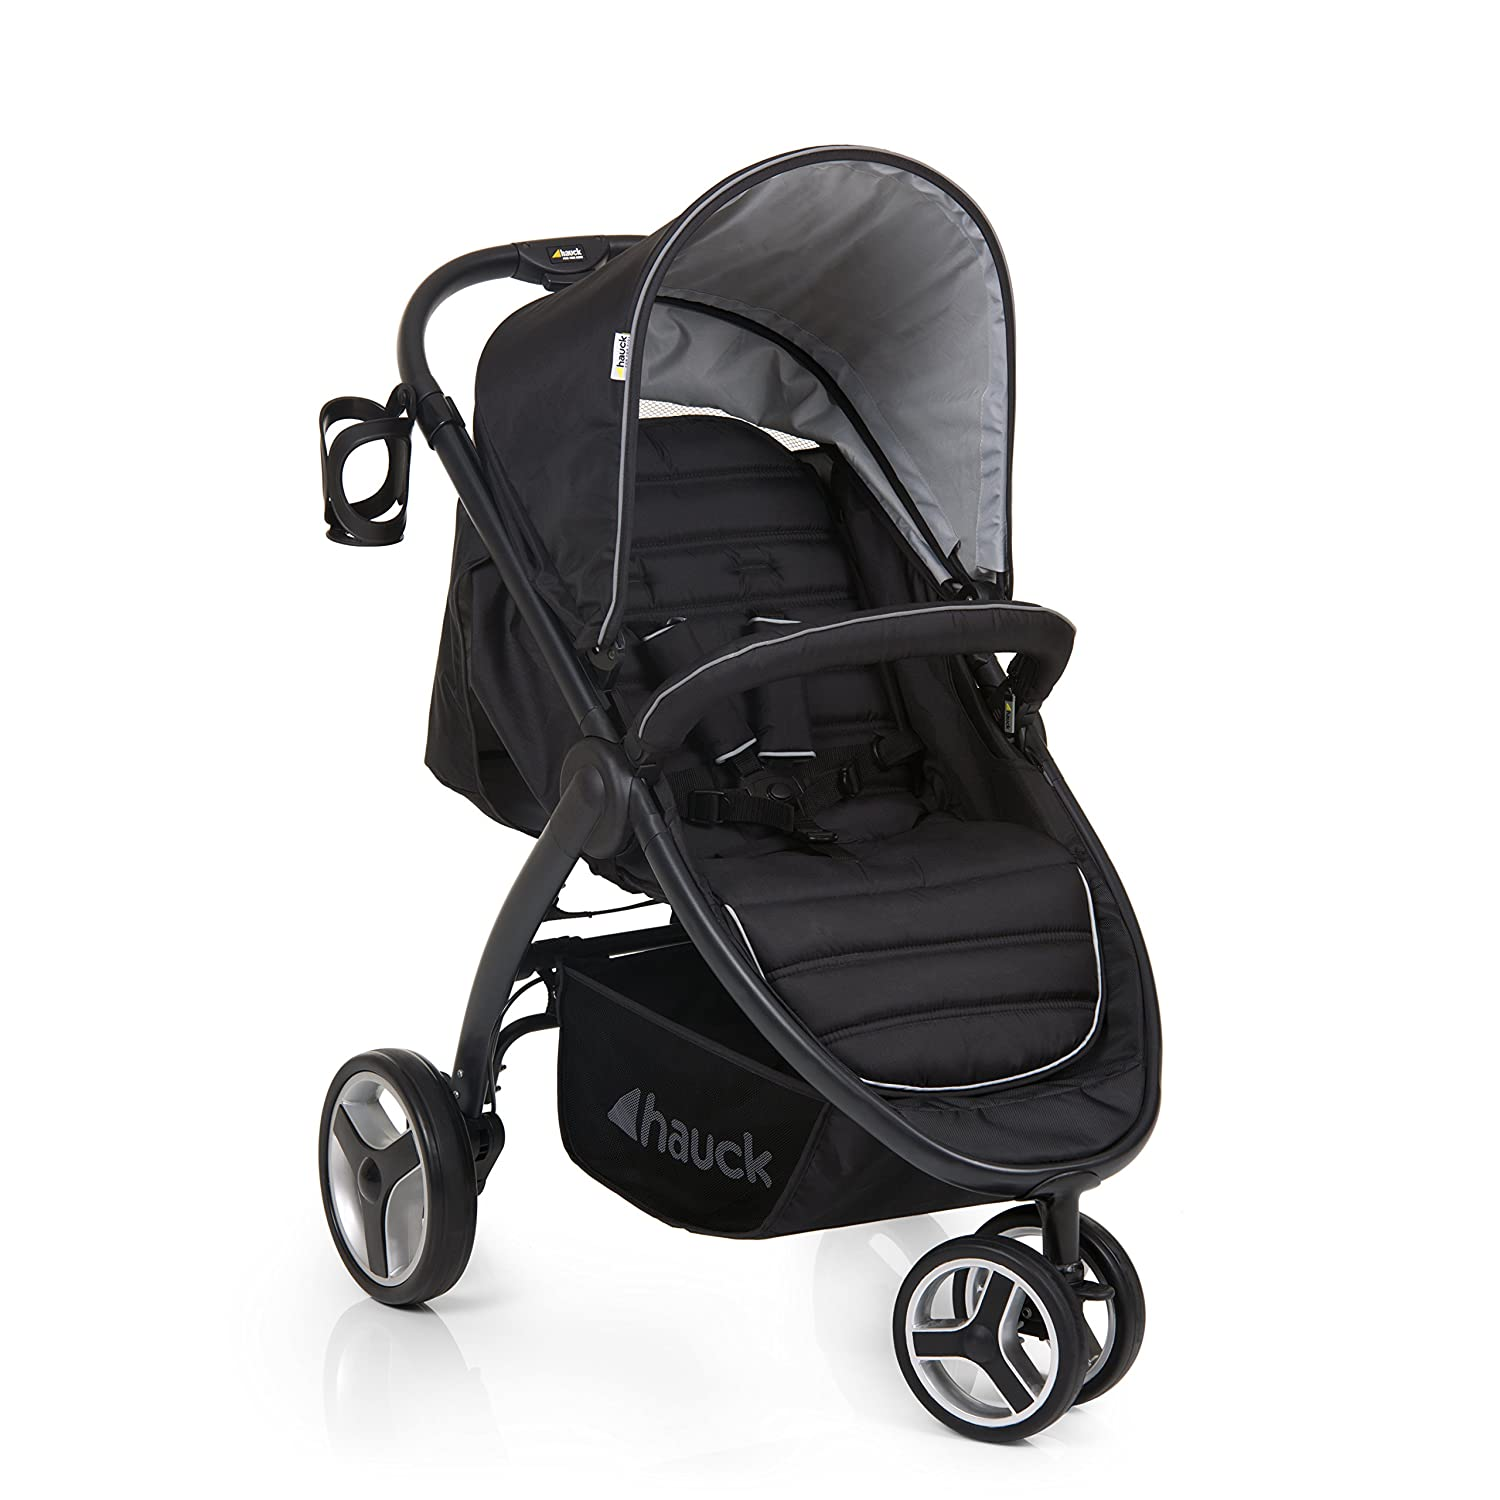 Hauck Lift-Up Three Easyfold Pushchair - Black H-14815